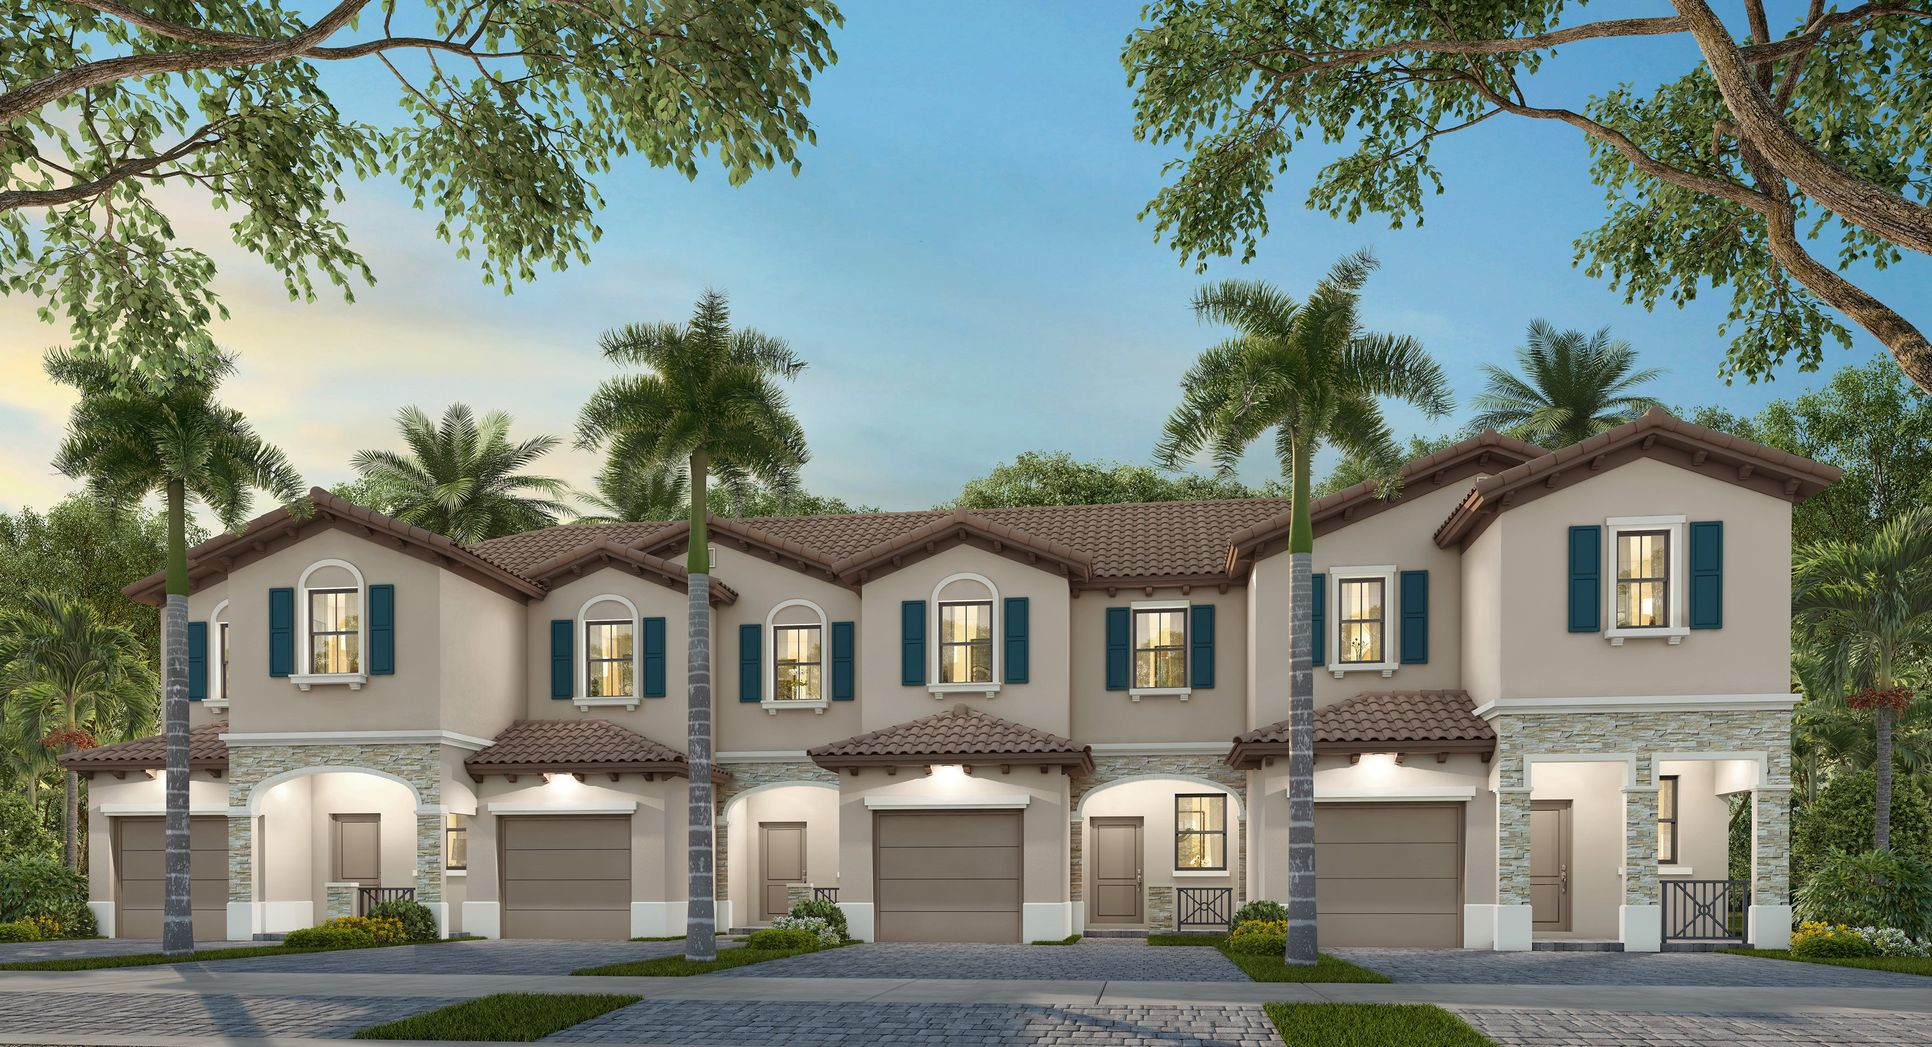 New Homes in North Lauderdale